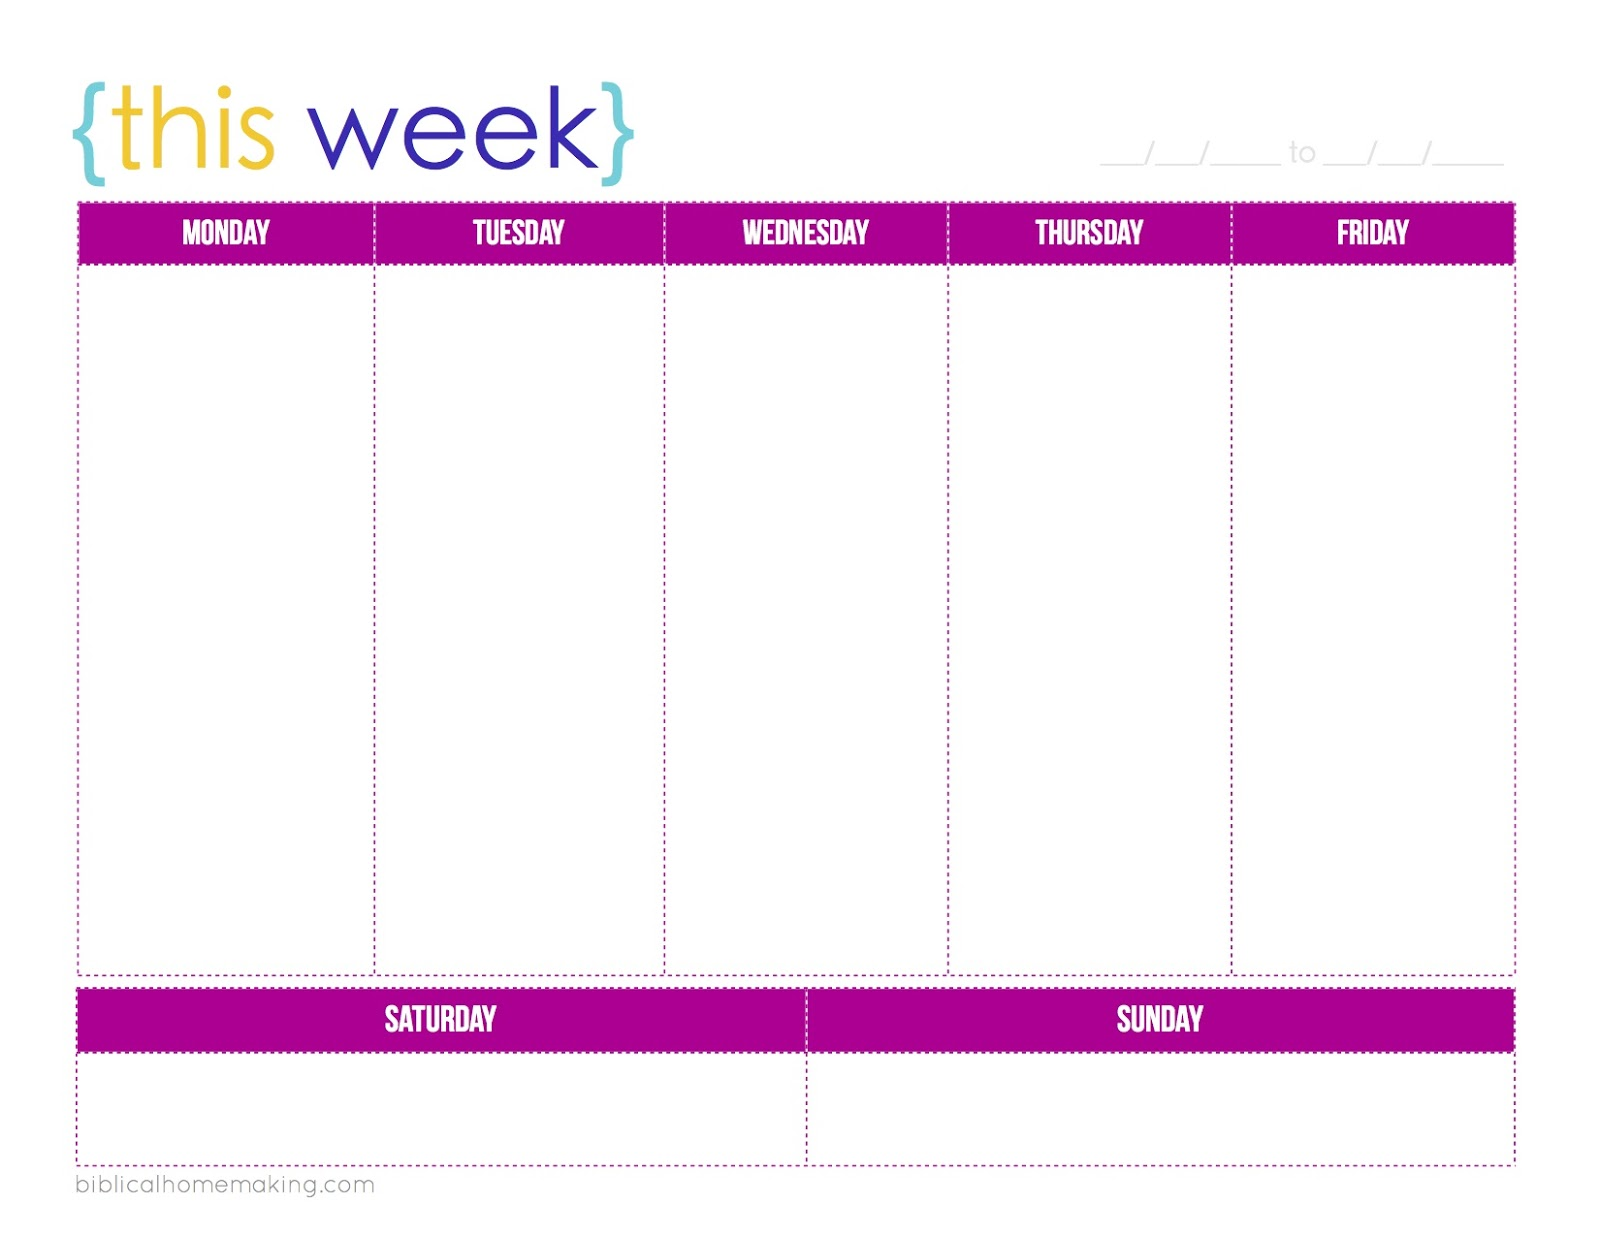 this week} :: a free weekly planner printable - Biblical Homemaking